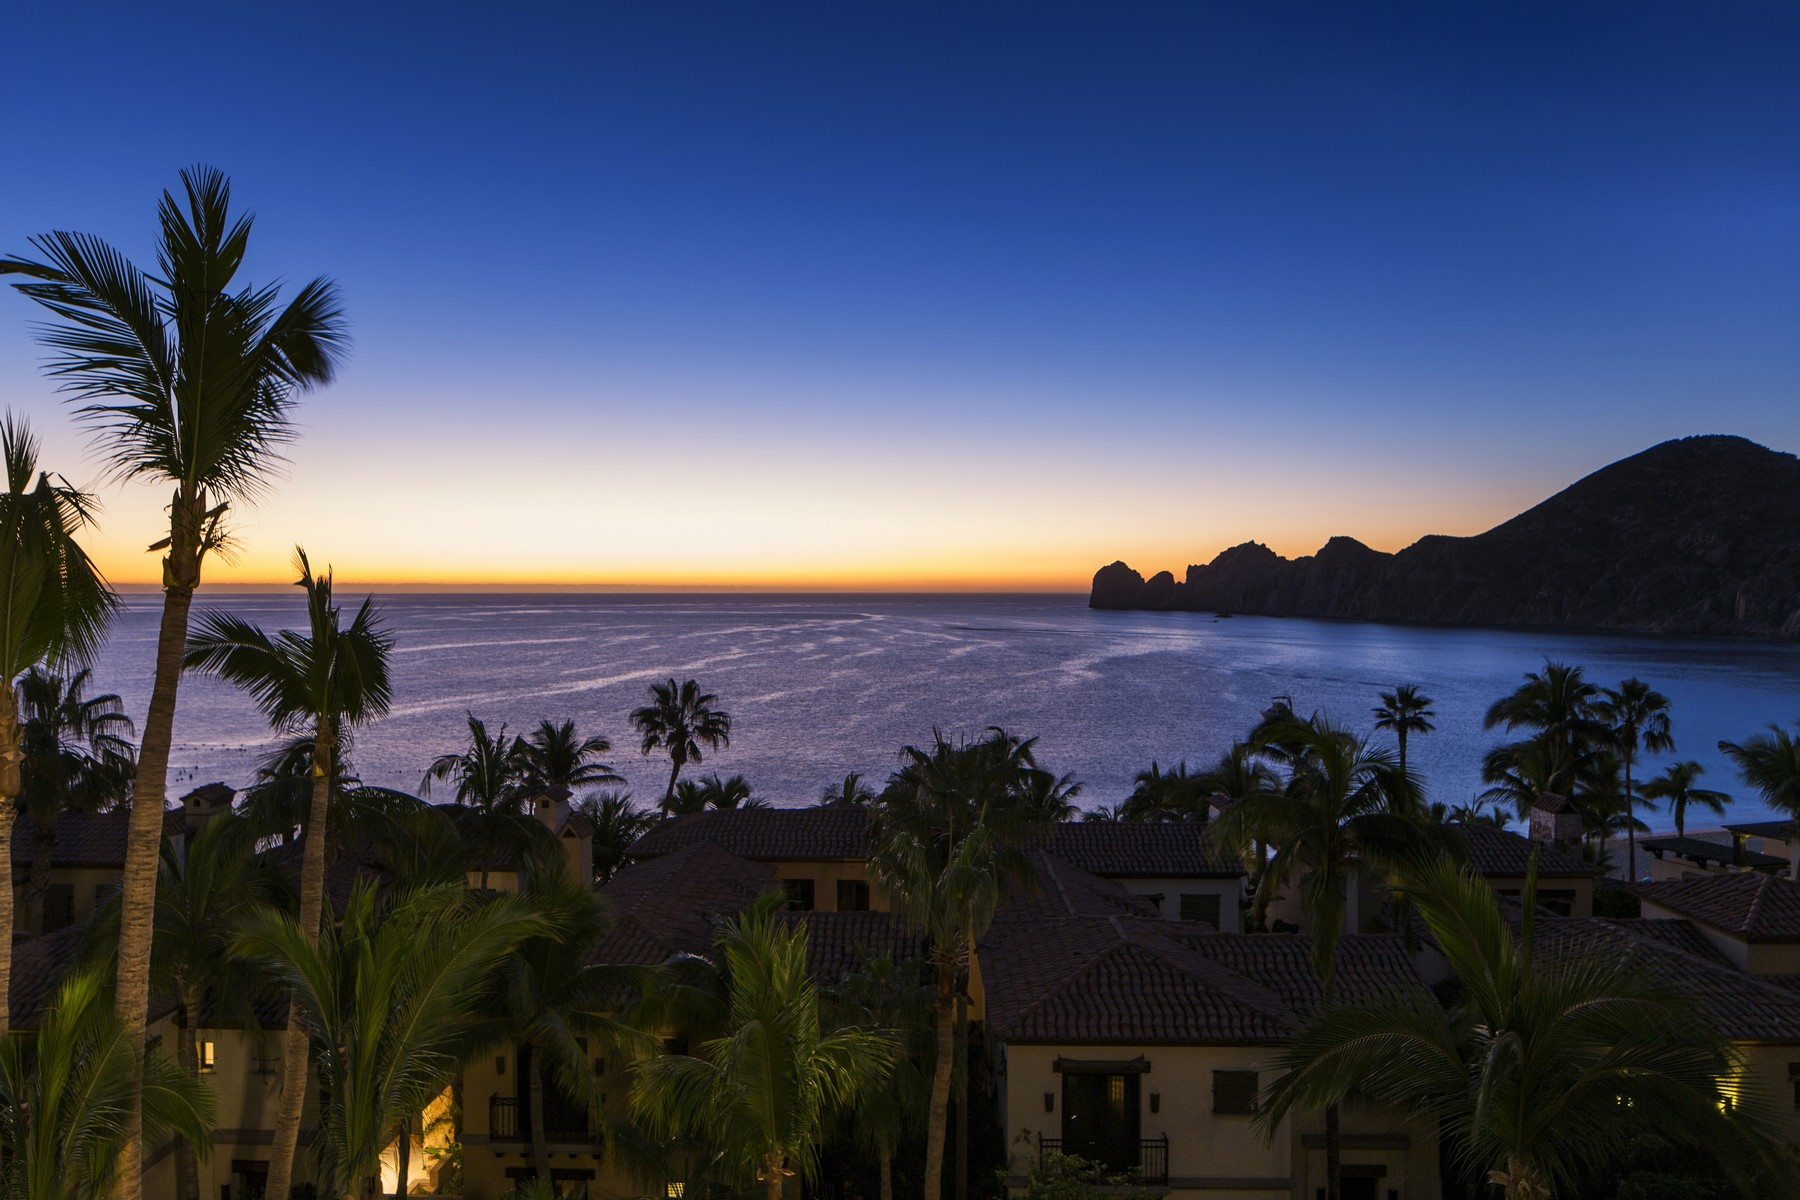 Other Residential for Rent at Collection 2303 Gomez Faria s/n El Medano Ejidal Cabo San Lucas, Baja California Sur 23453 Mexico